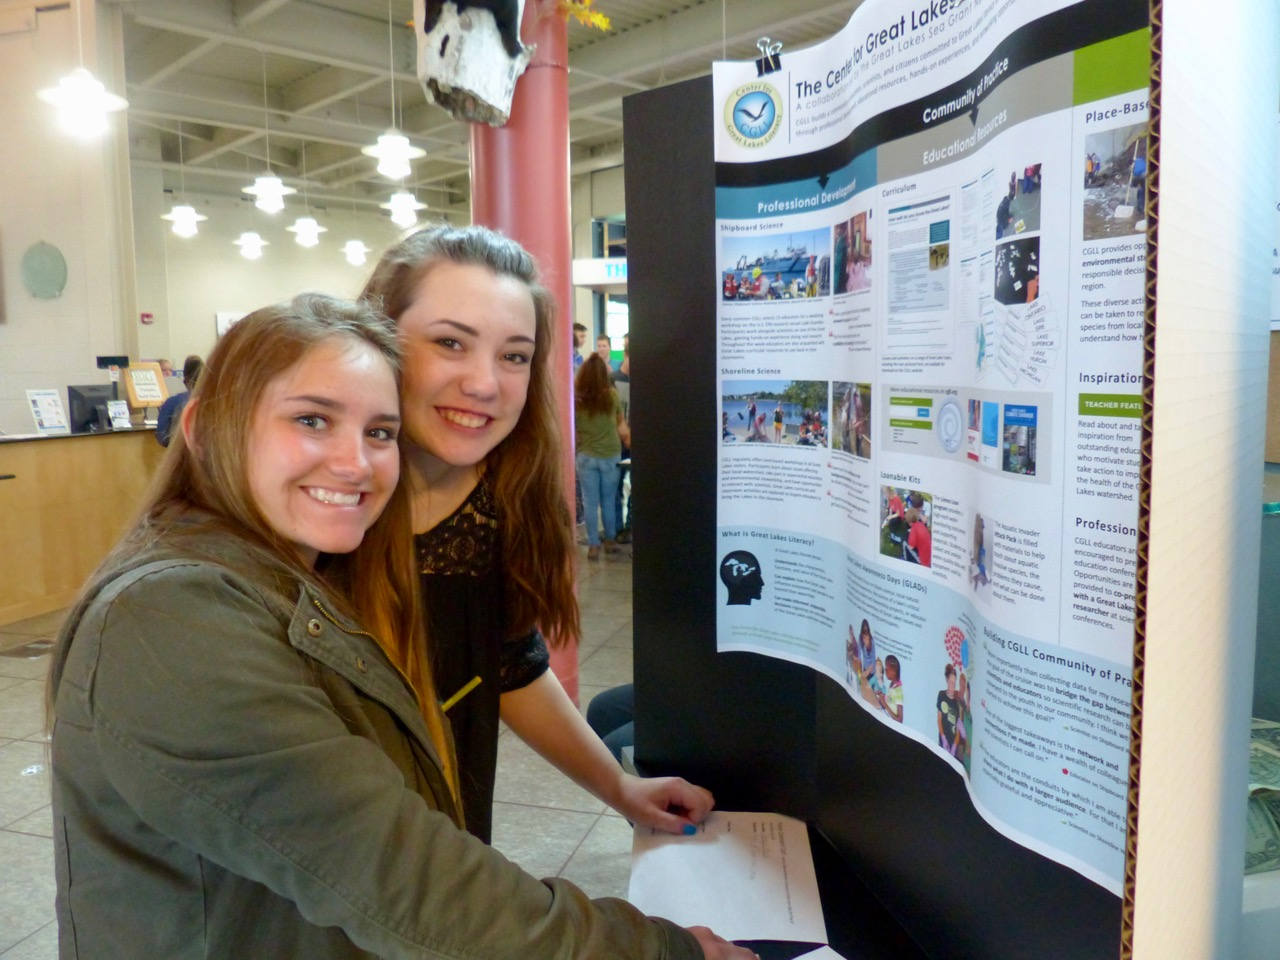 Great Lakes Awareness Day 2017 student participants